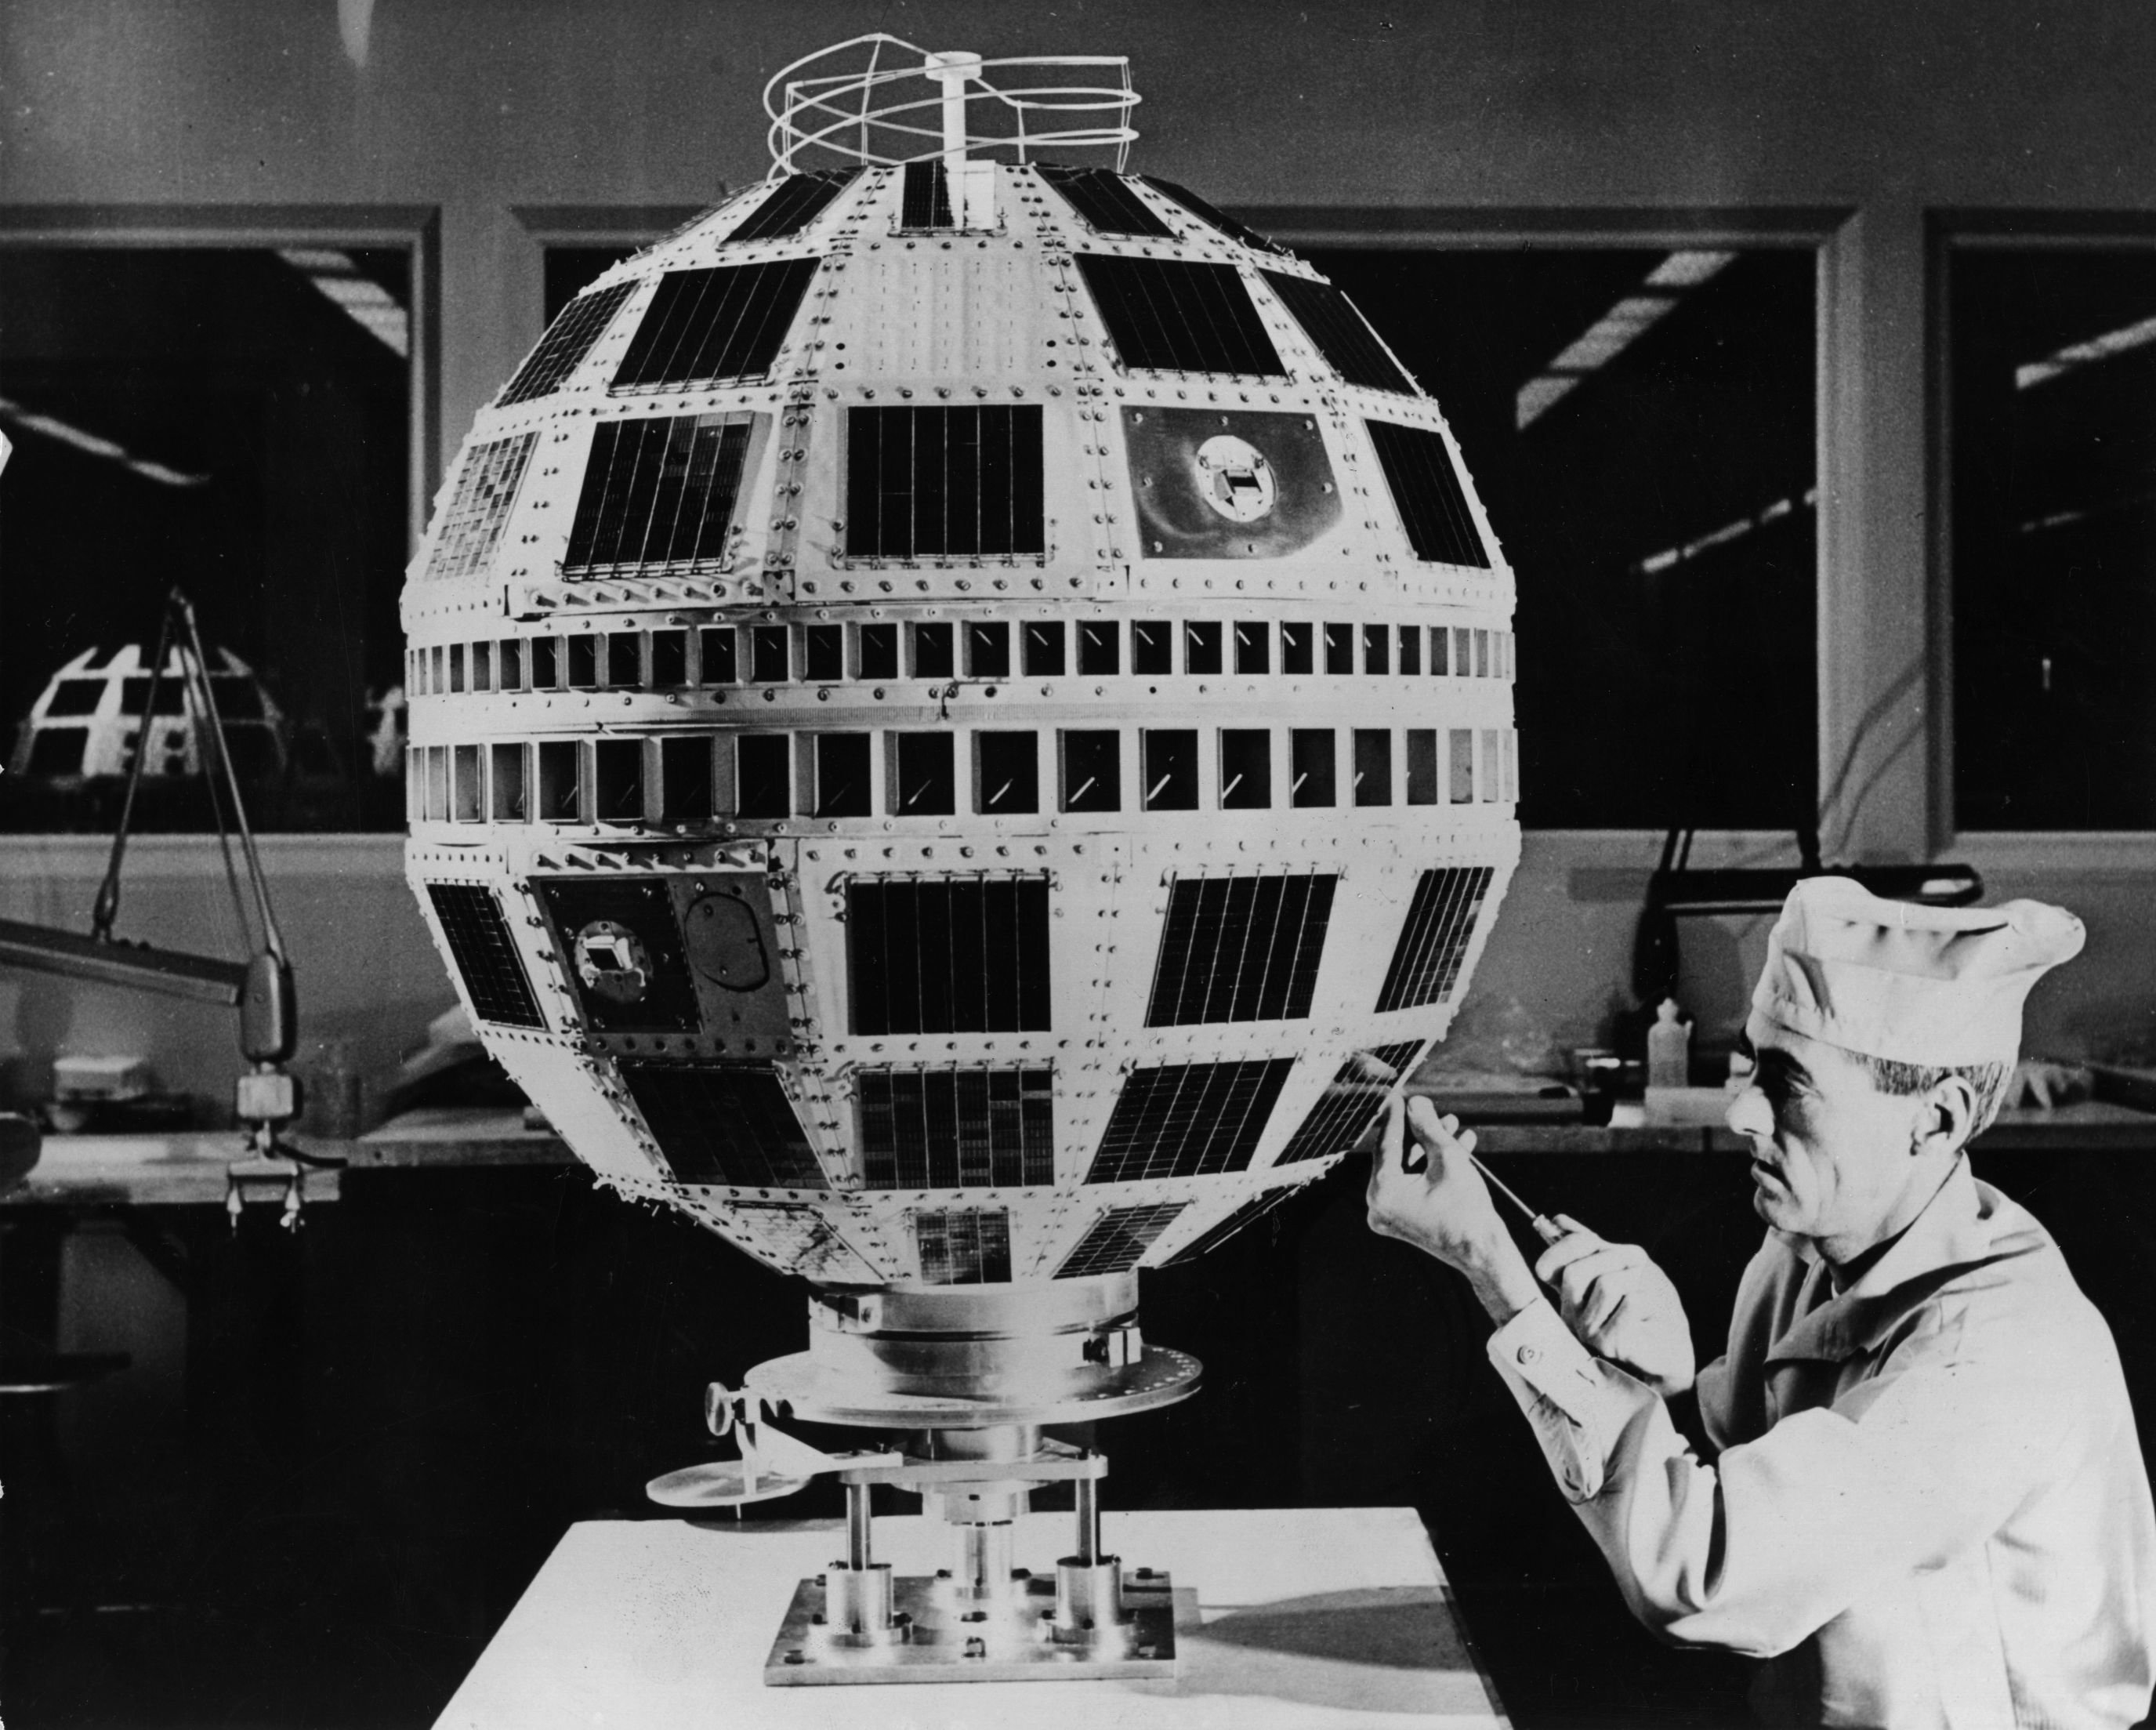 10 Attractive The Idea Factory Bell Labs from transistors to telstar idea factory traces bell labs legacy 2020